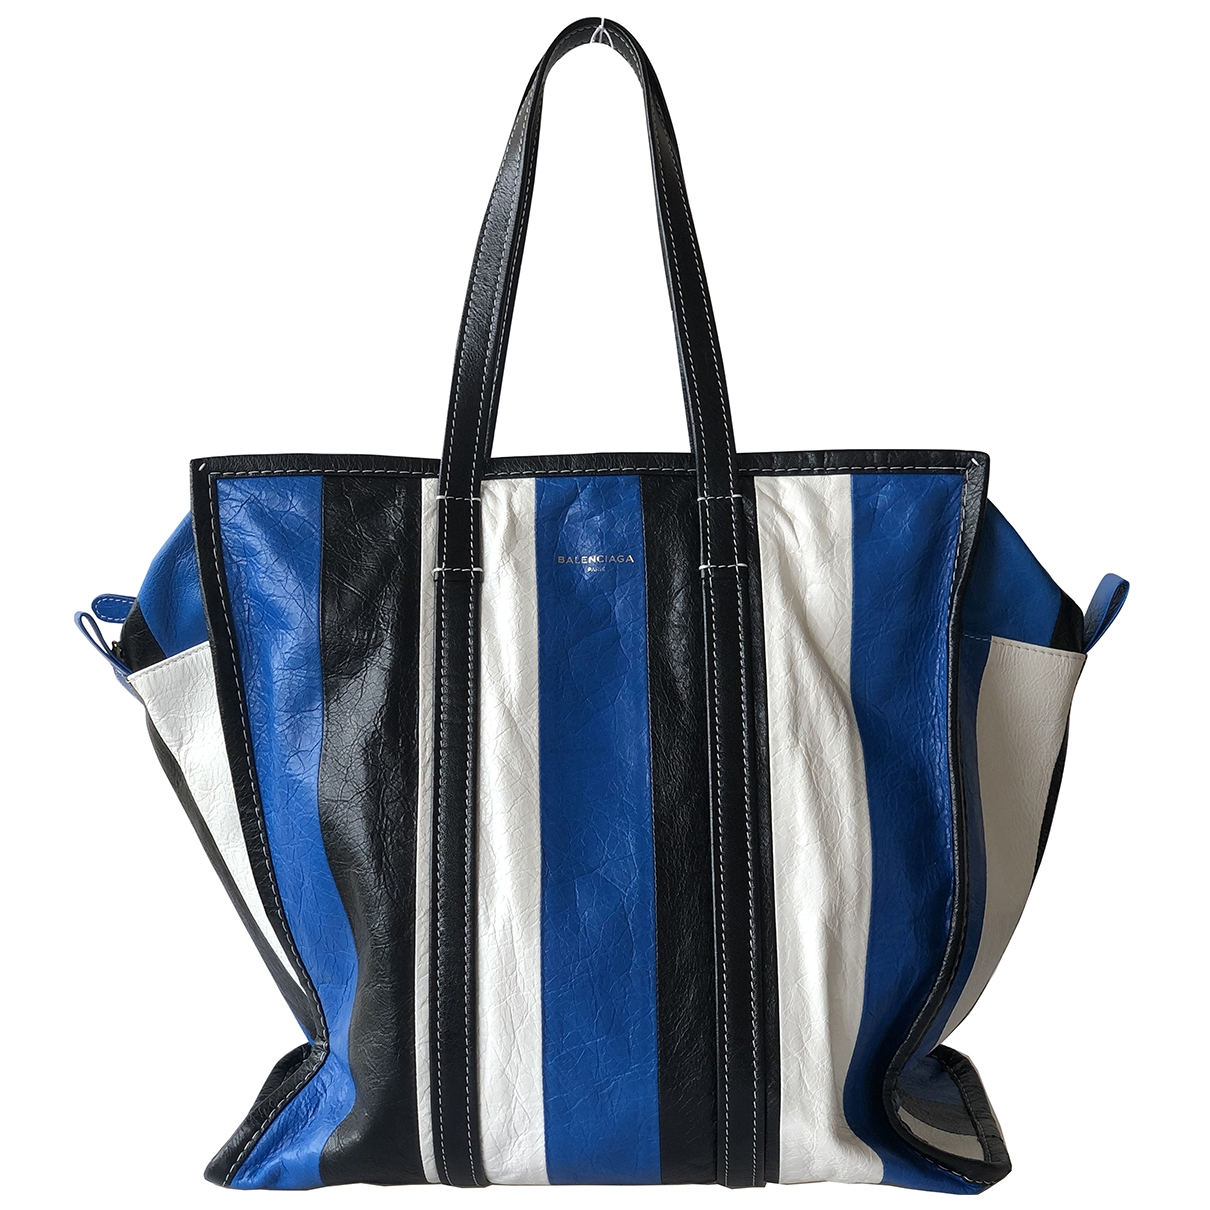 Balenciaga Bazar Bag Blue Leather handbag for Women \N